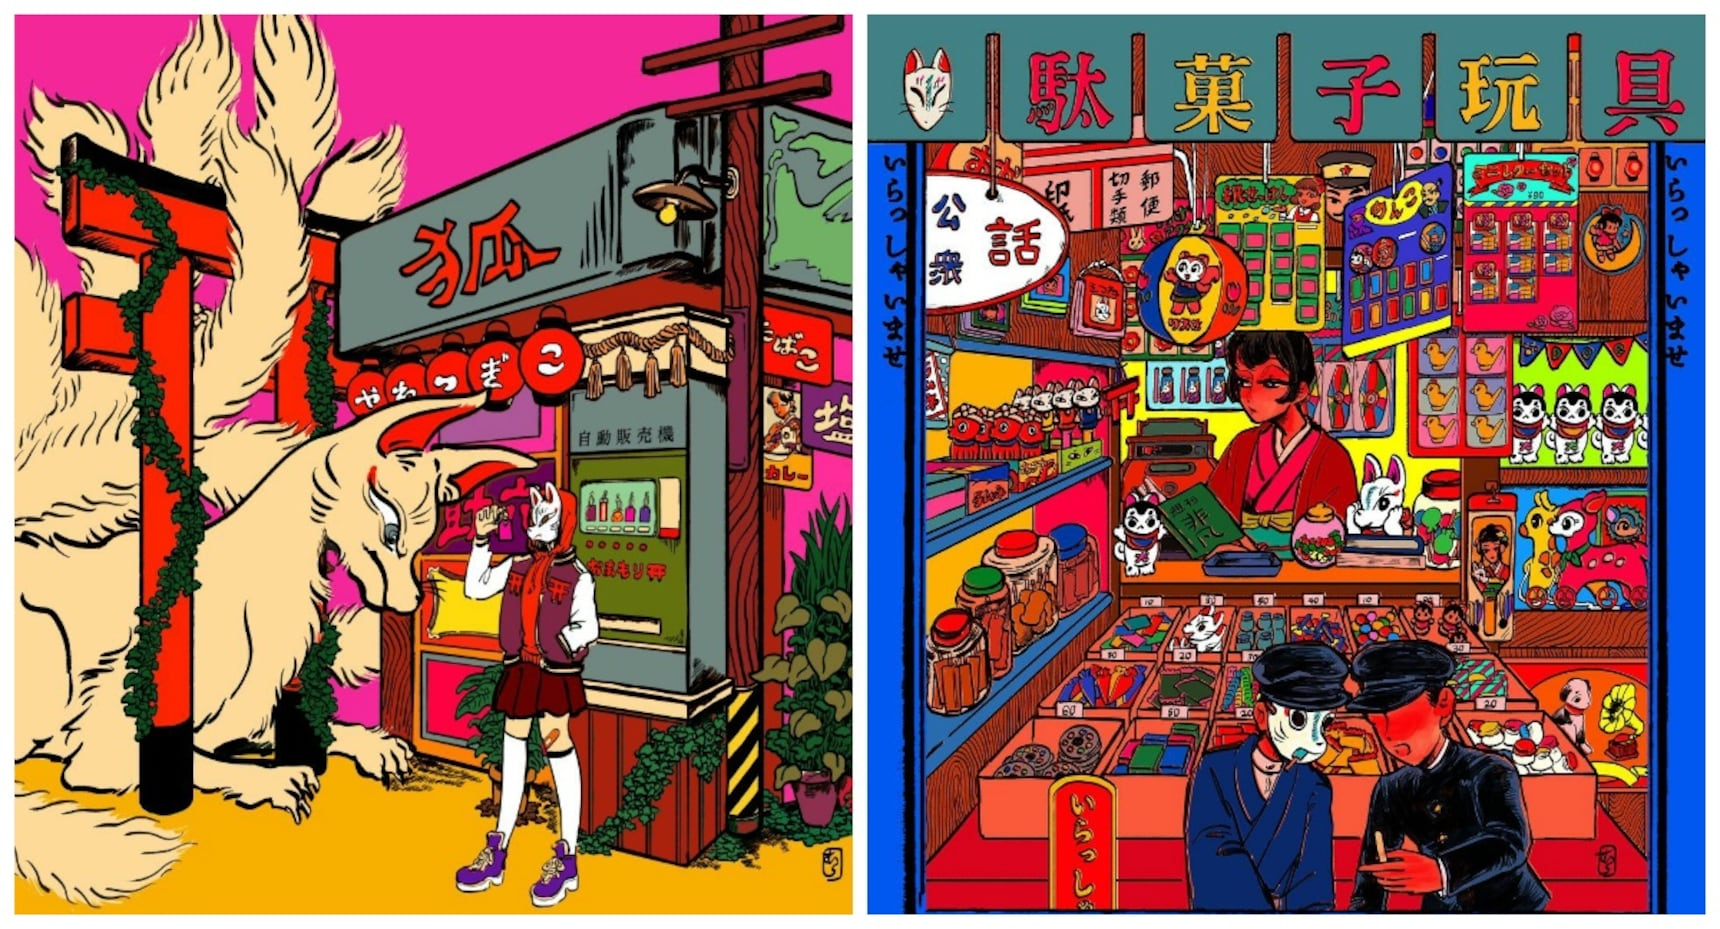 Ridiculously Colorful Retro-Inspired Art